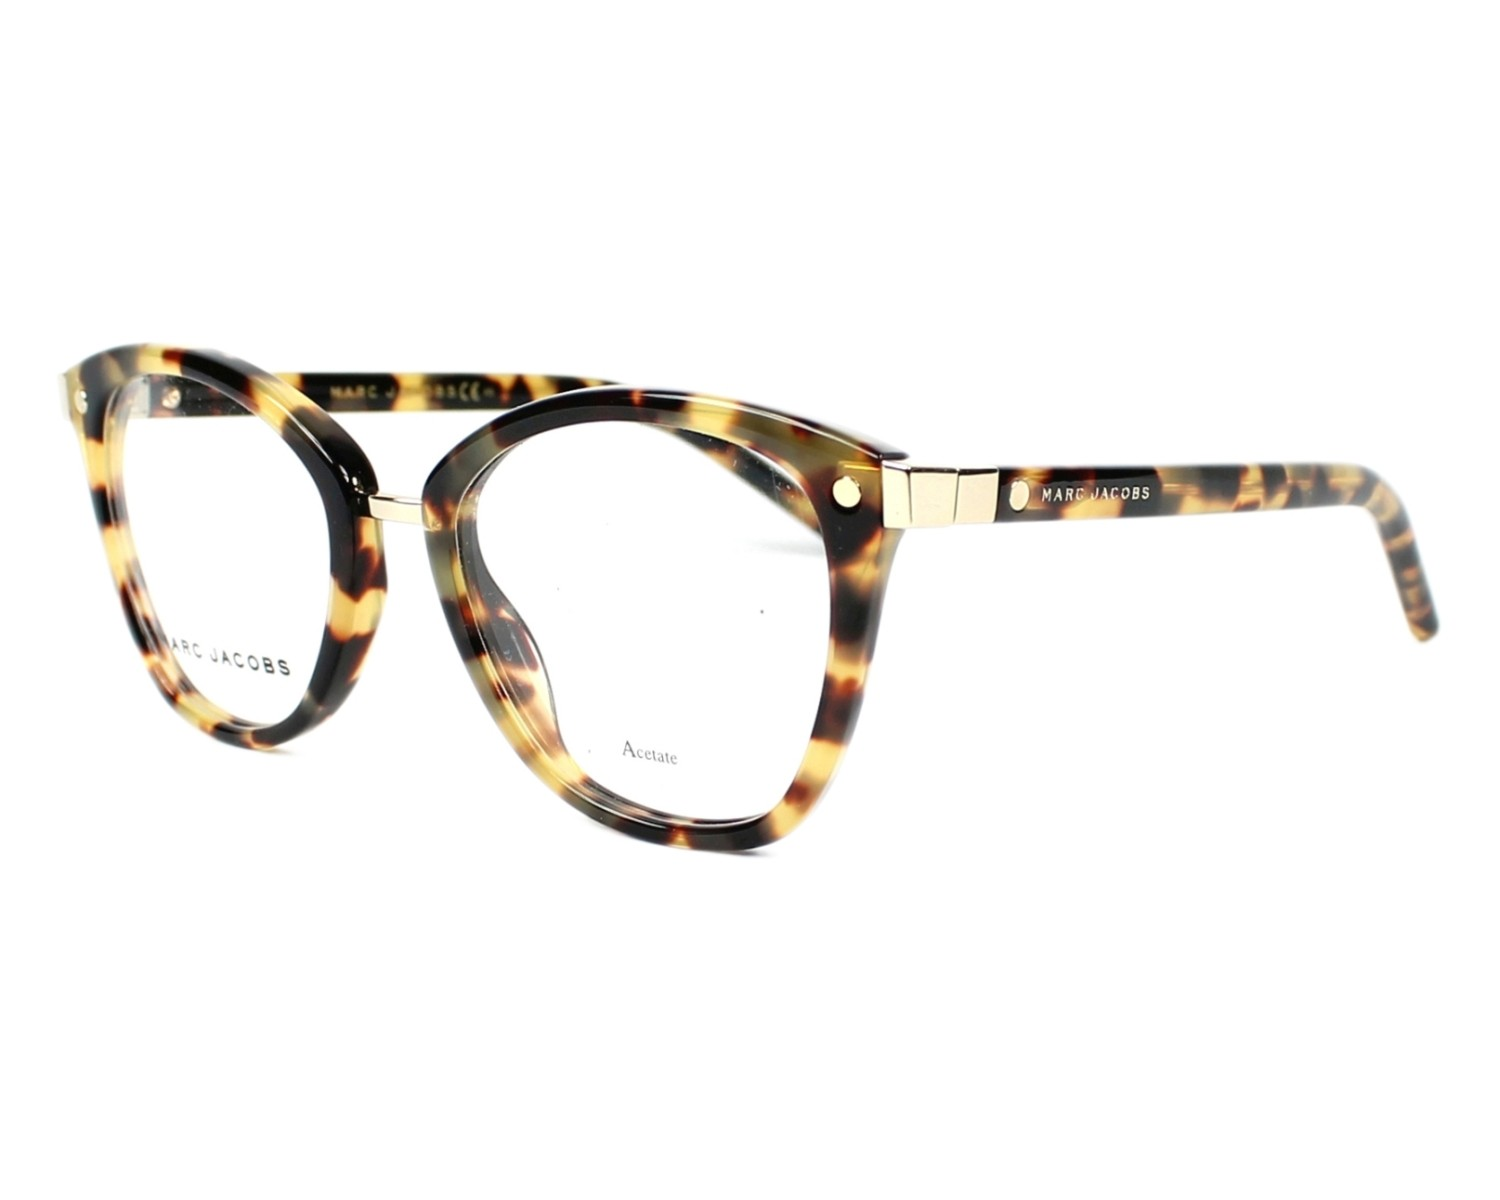 Marc Jacobs Eyeglasses Marc 24 00f Havana Visionet Uk